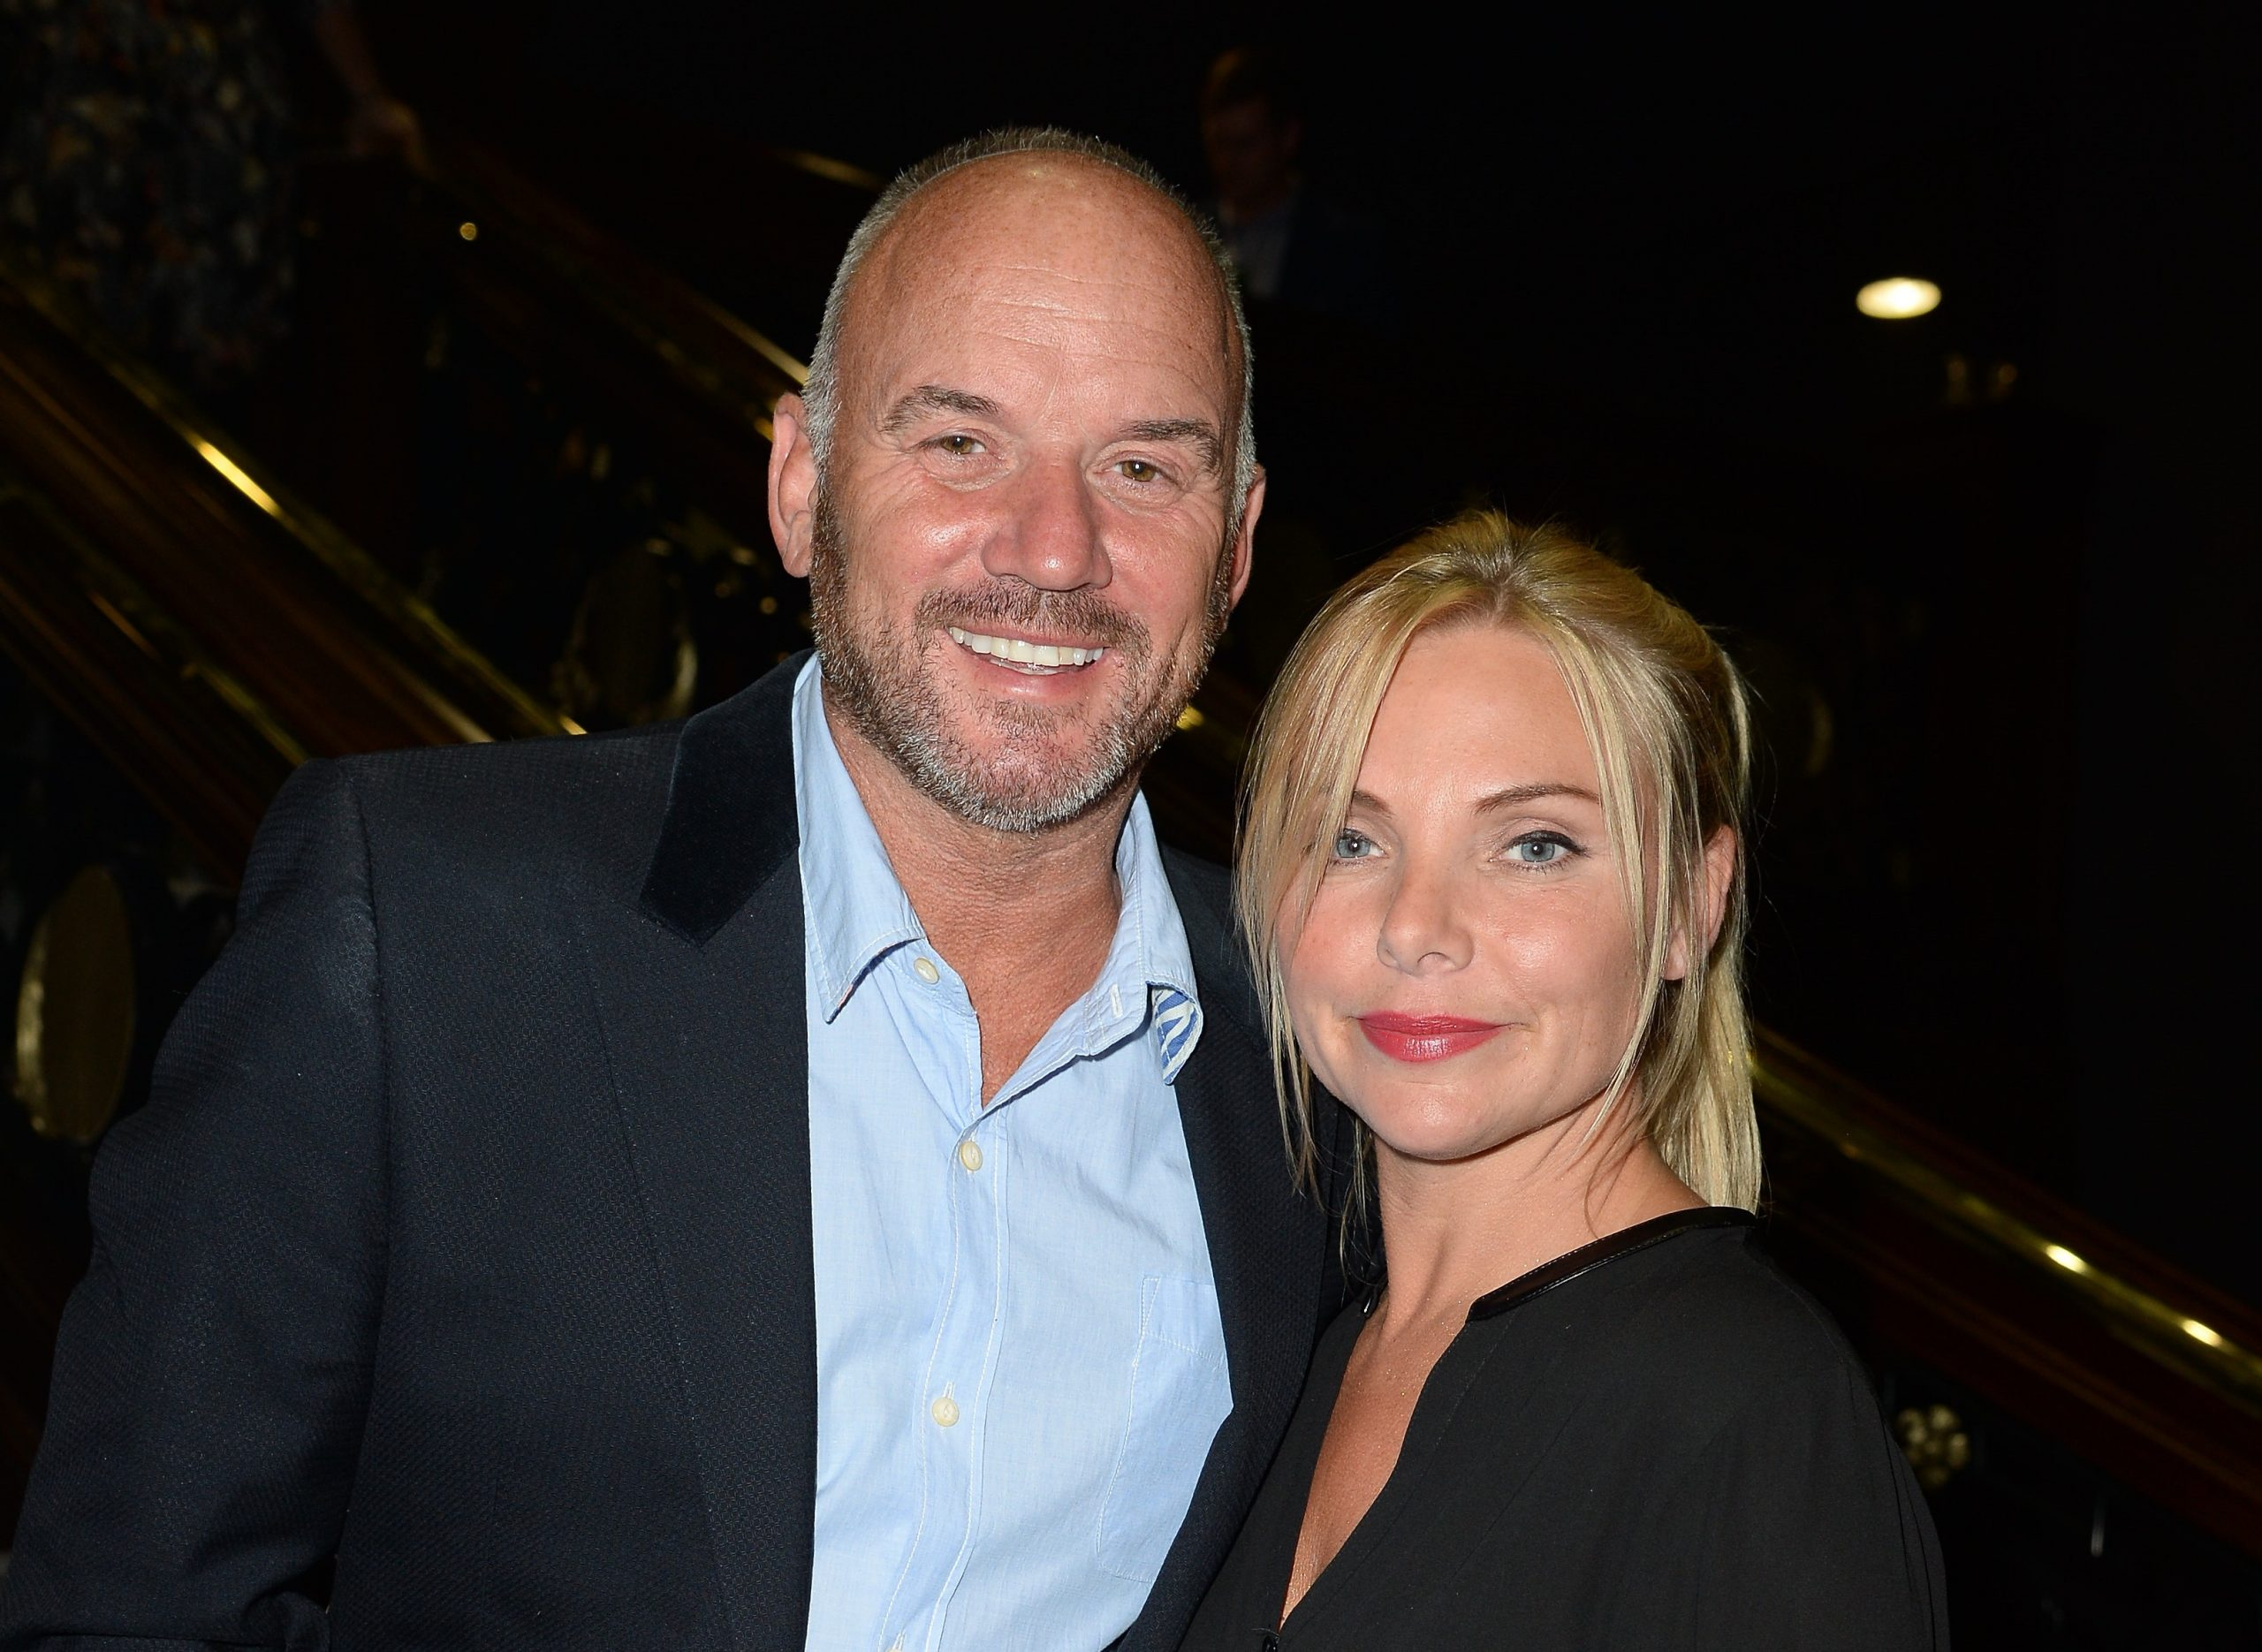 Emmerdale's Mark Womack reveals wife Samantha 'criticises' him over new role